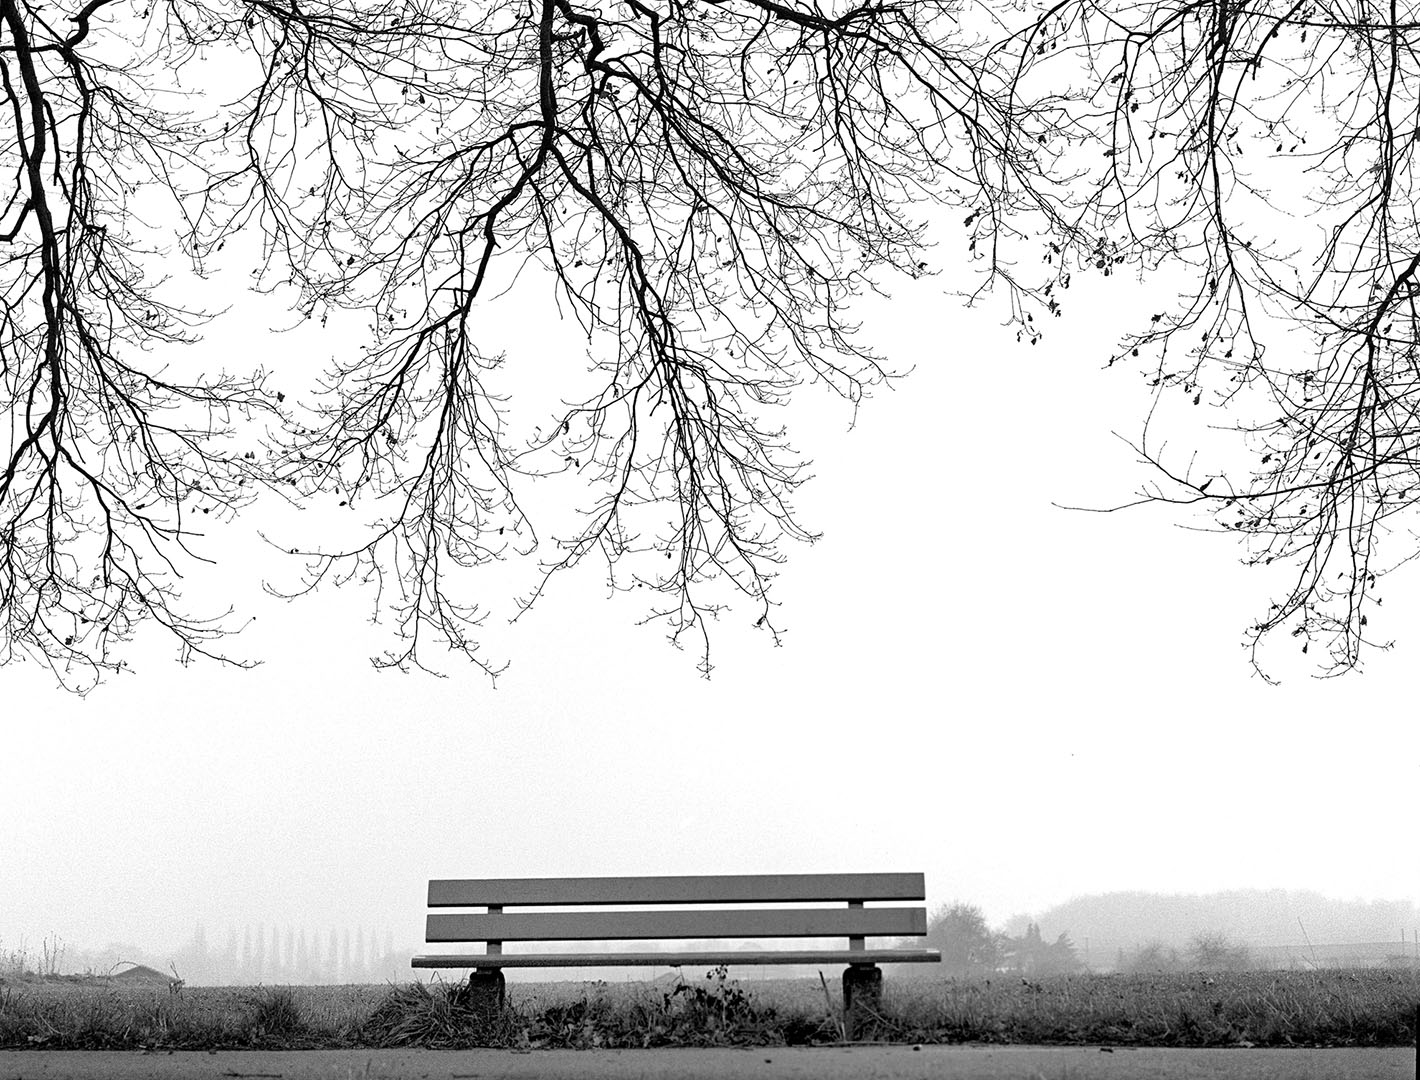 Wish_you_were_here_in_Black_and_White_027_B1.71